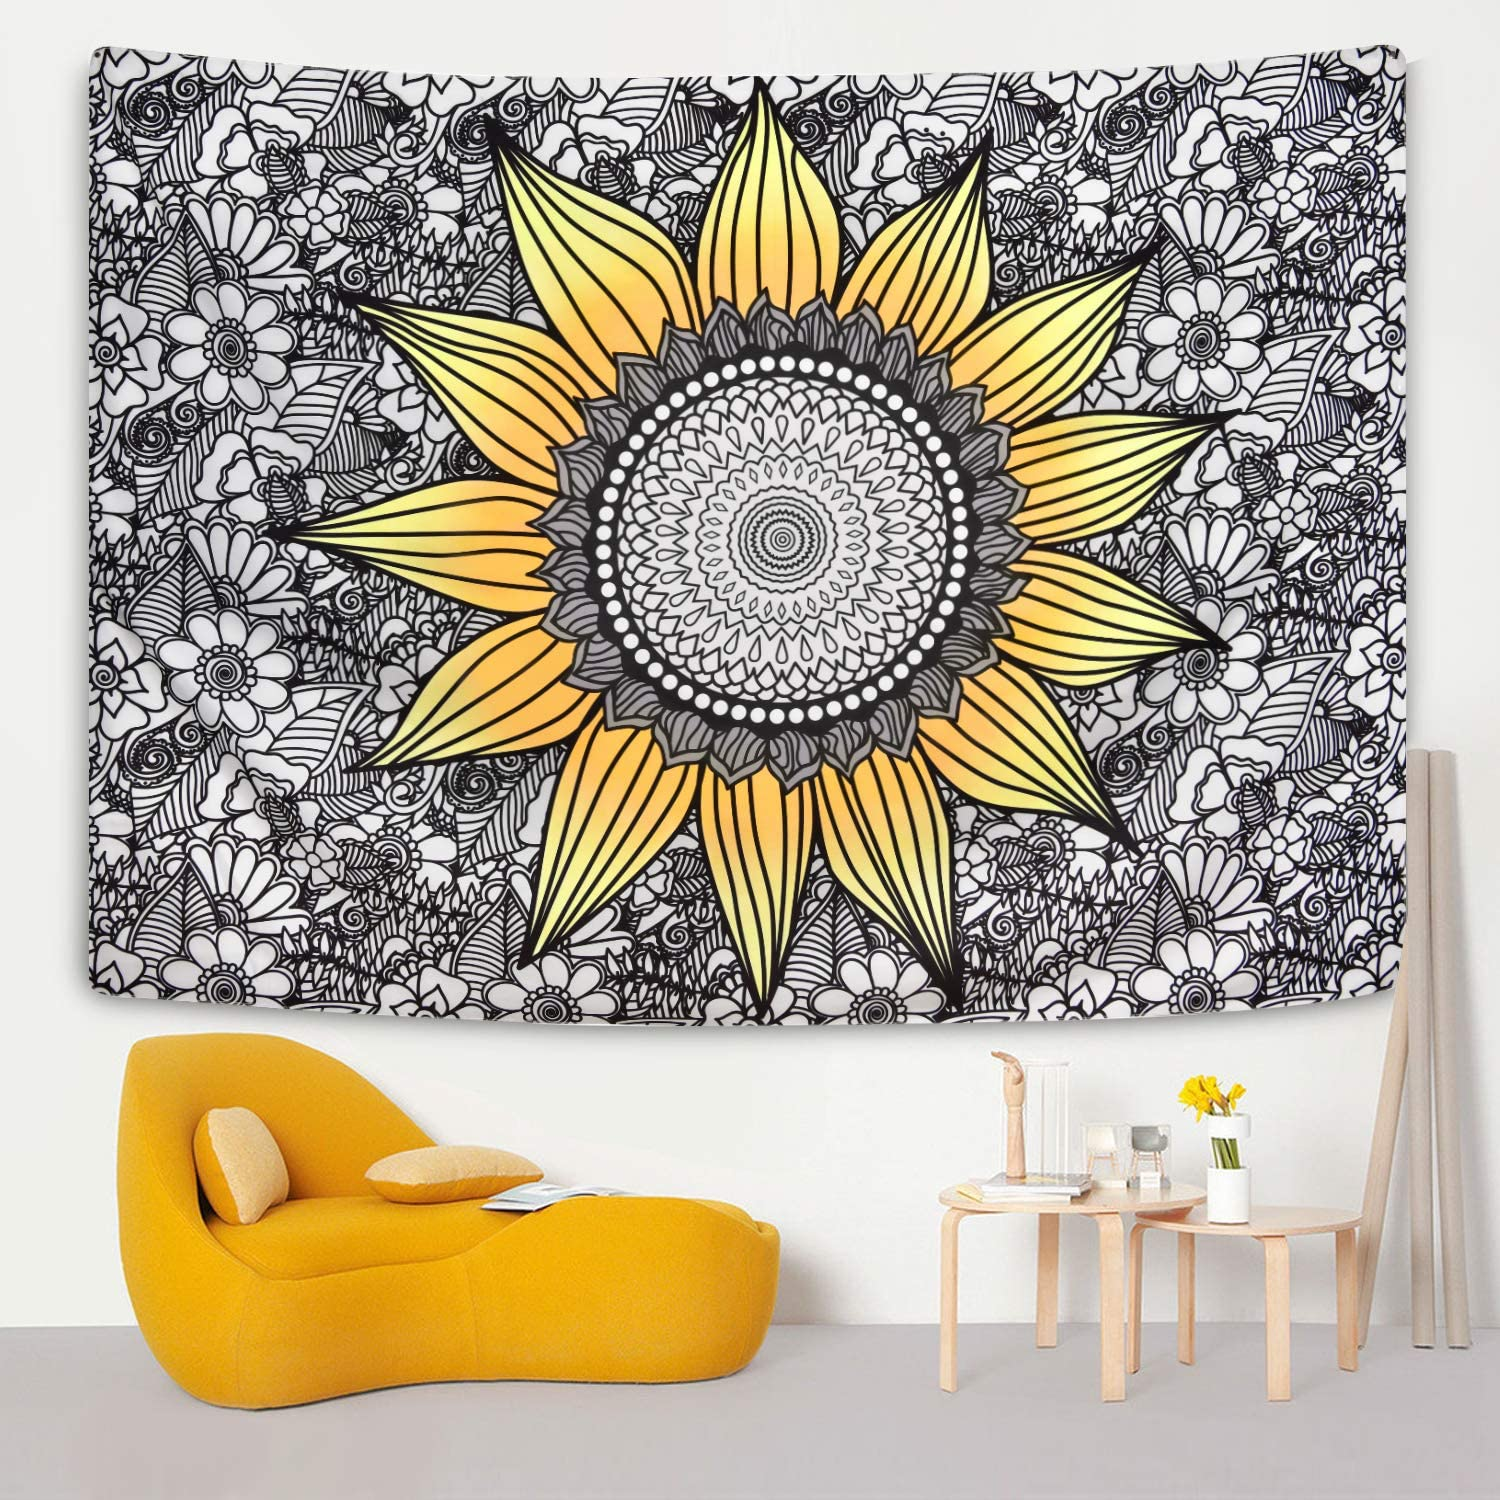 Sunflower Tapestry Yellow and Elegant Black Floral Factory outlet Plants Flowe